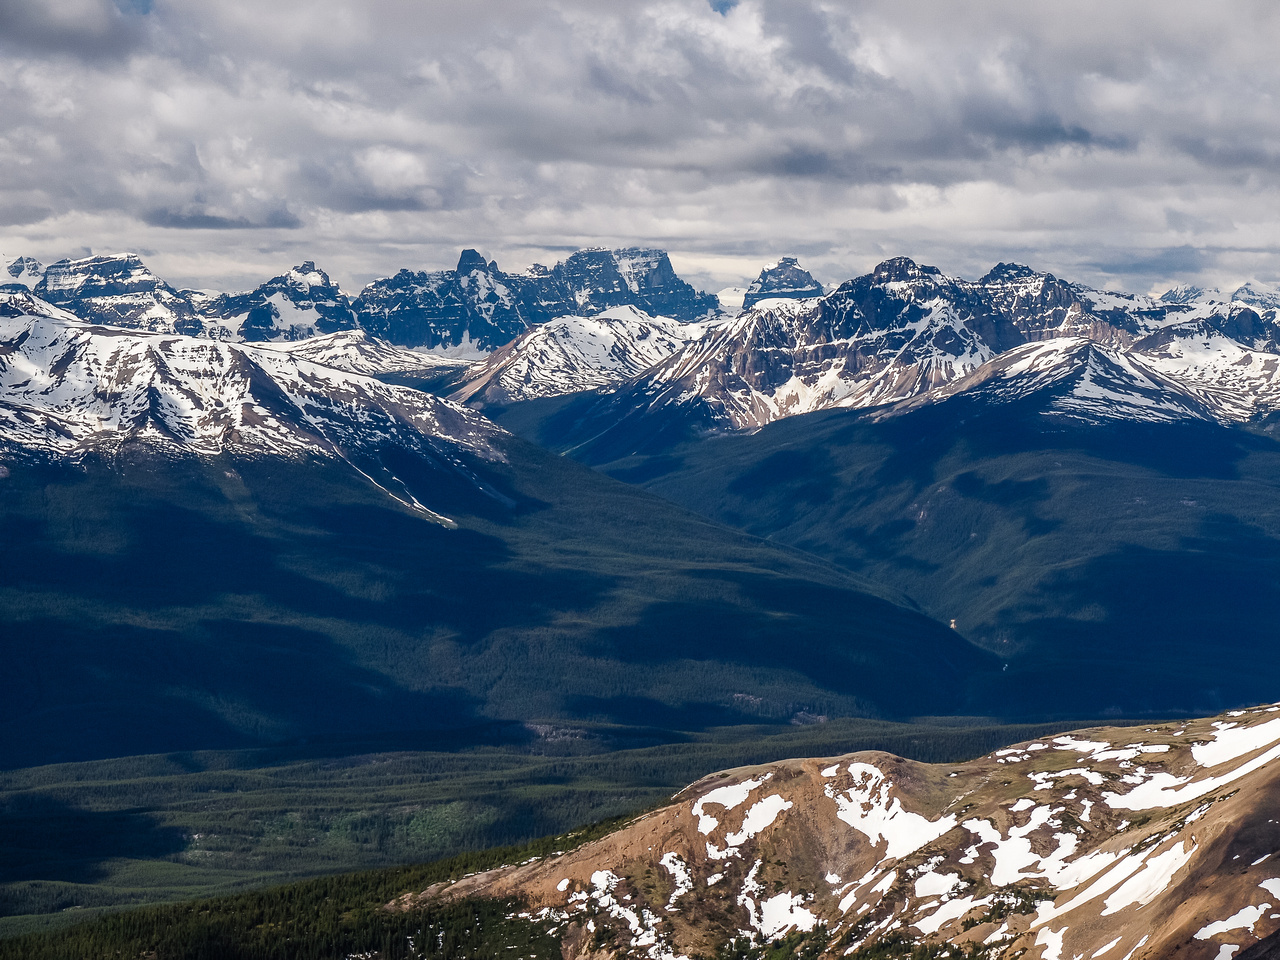 To the southwest lies the Tonquin Valley and the Ramparts including Mount Geikie and Turret Mountain.